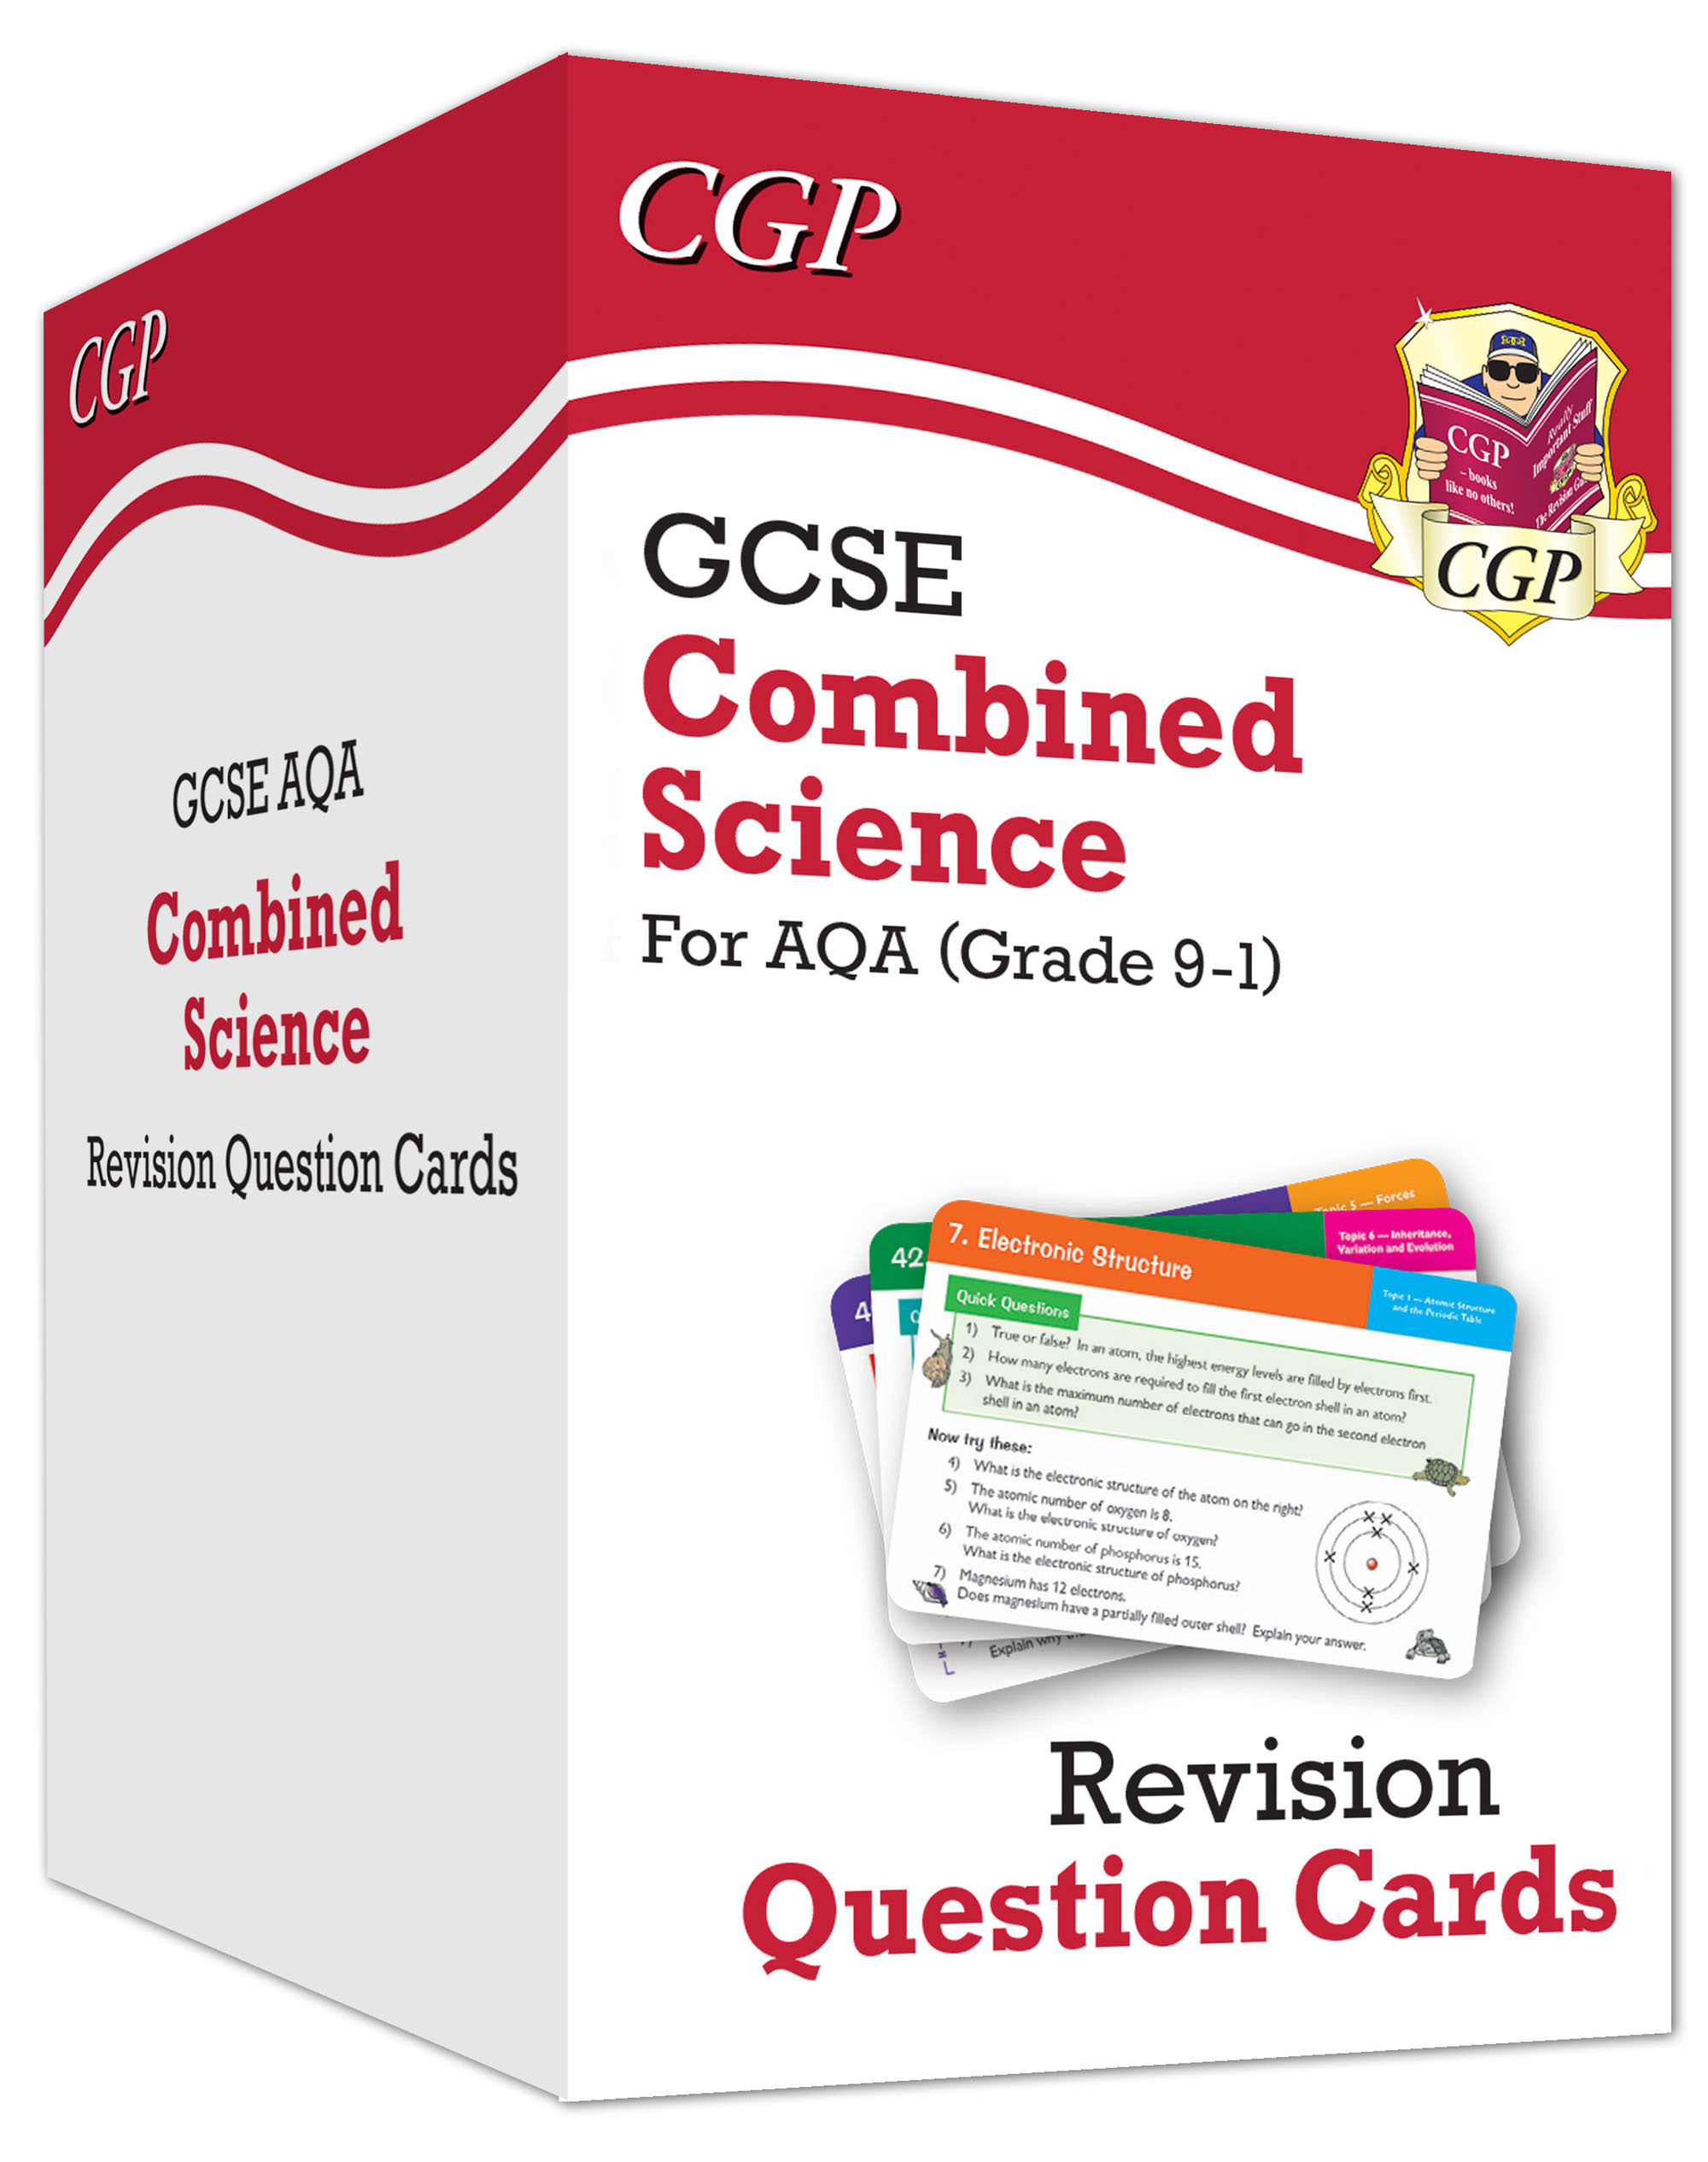 SCAF41D - New 9-1 GCSE Combined Science AQA Revision Cards: All-in-one Biology, Chemistry & Physics